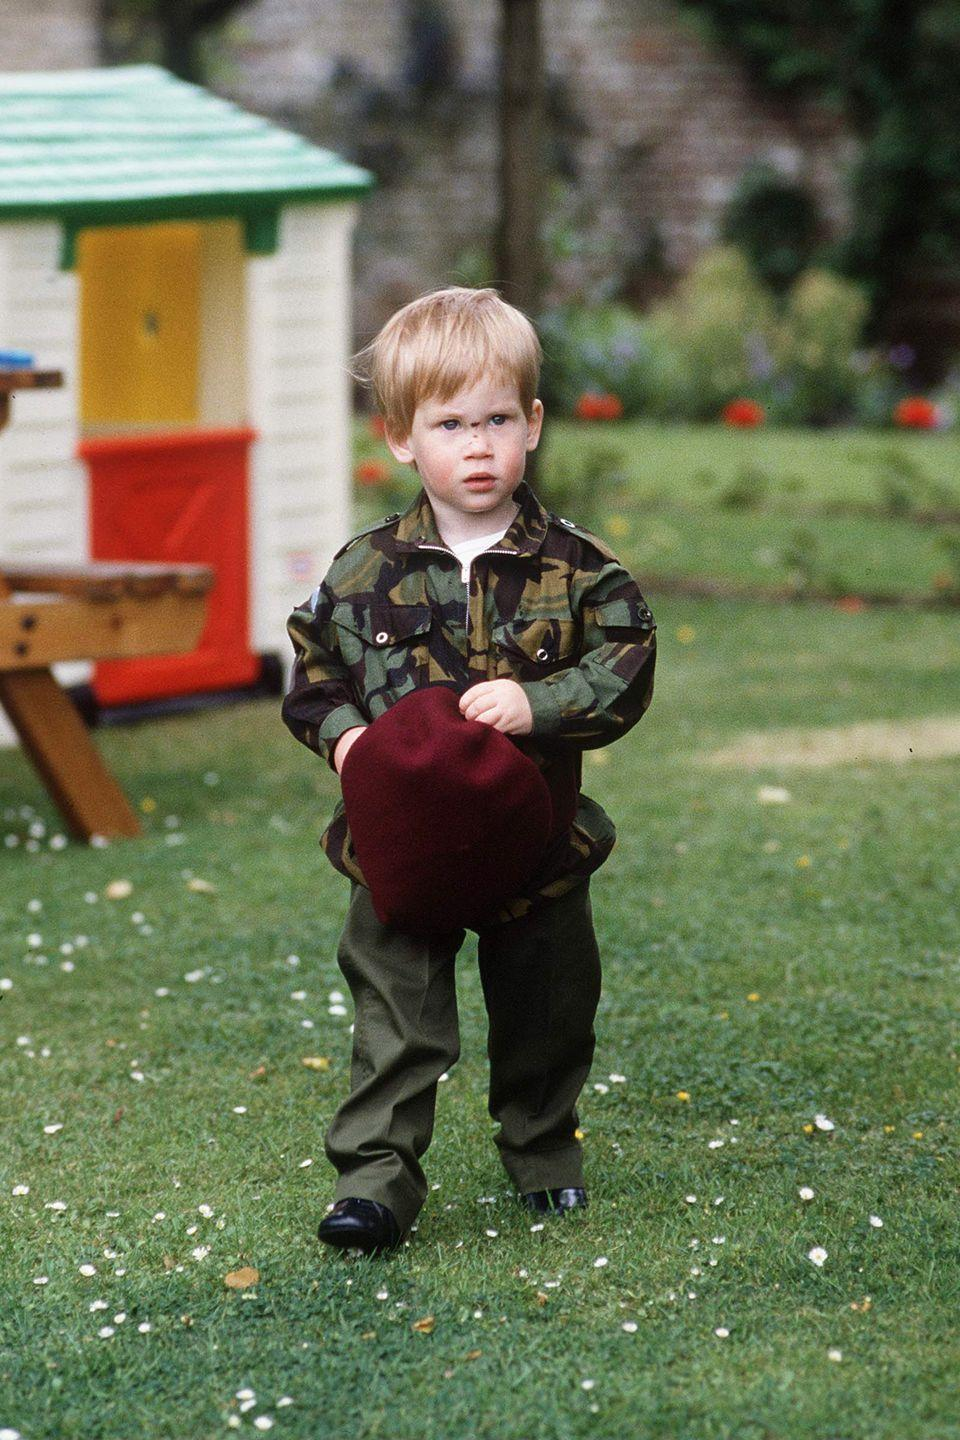 <p>The young royal plays in the backyard of Highgrove House wearing an army uniform. </p>